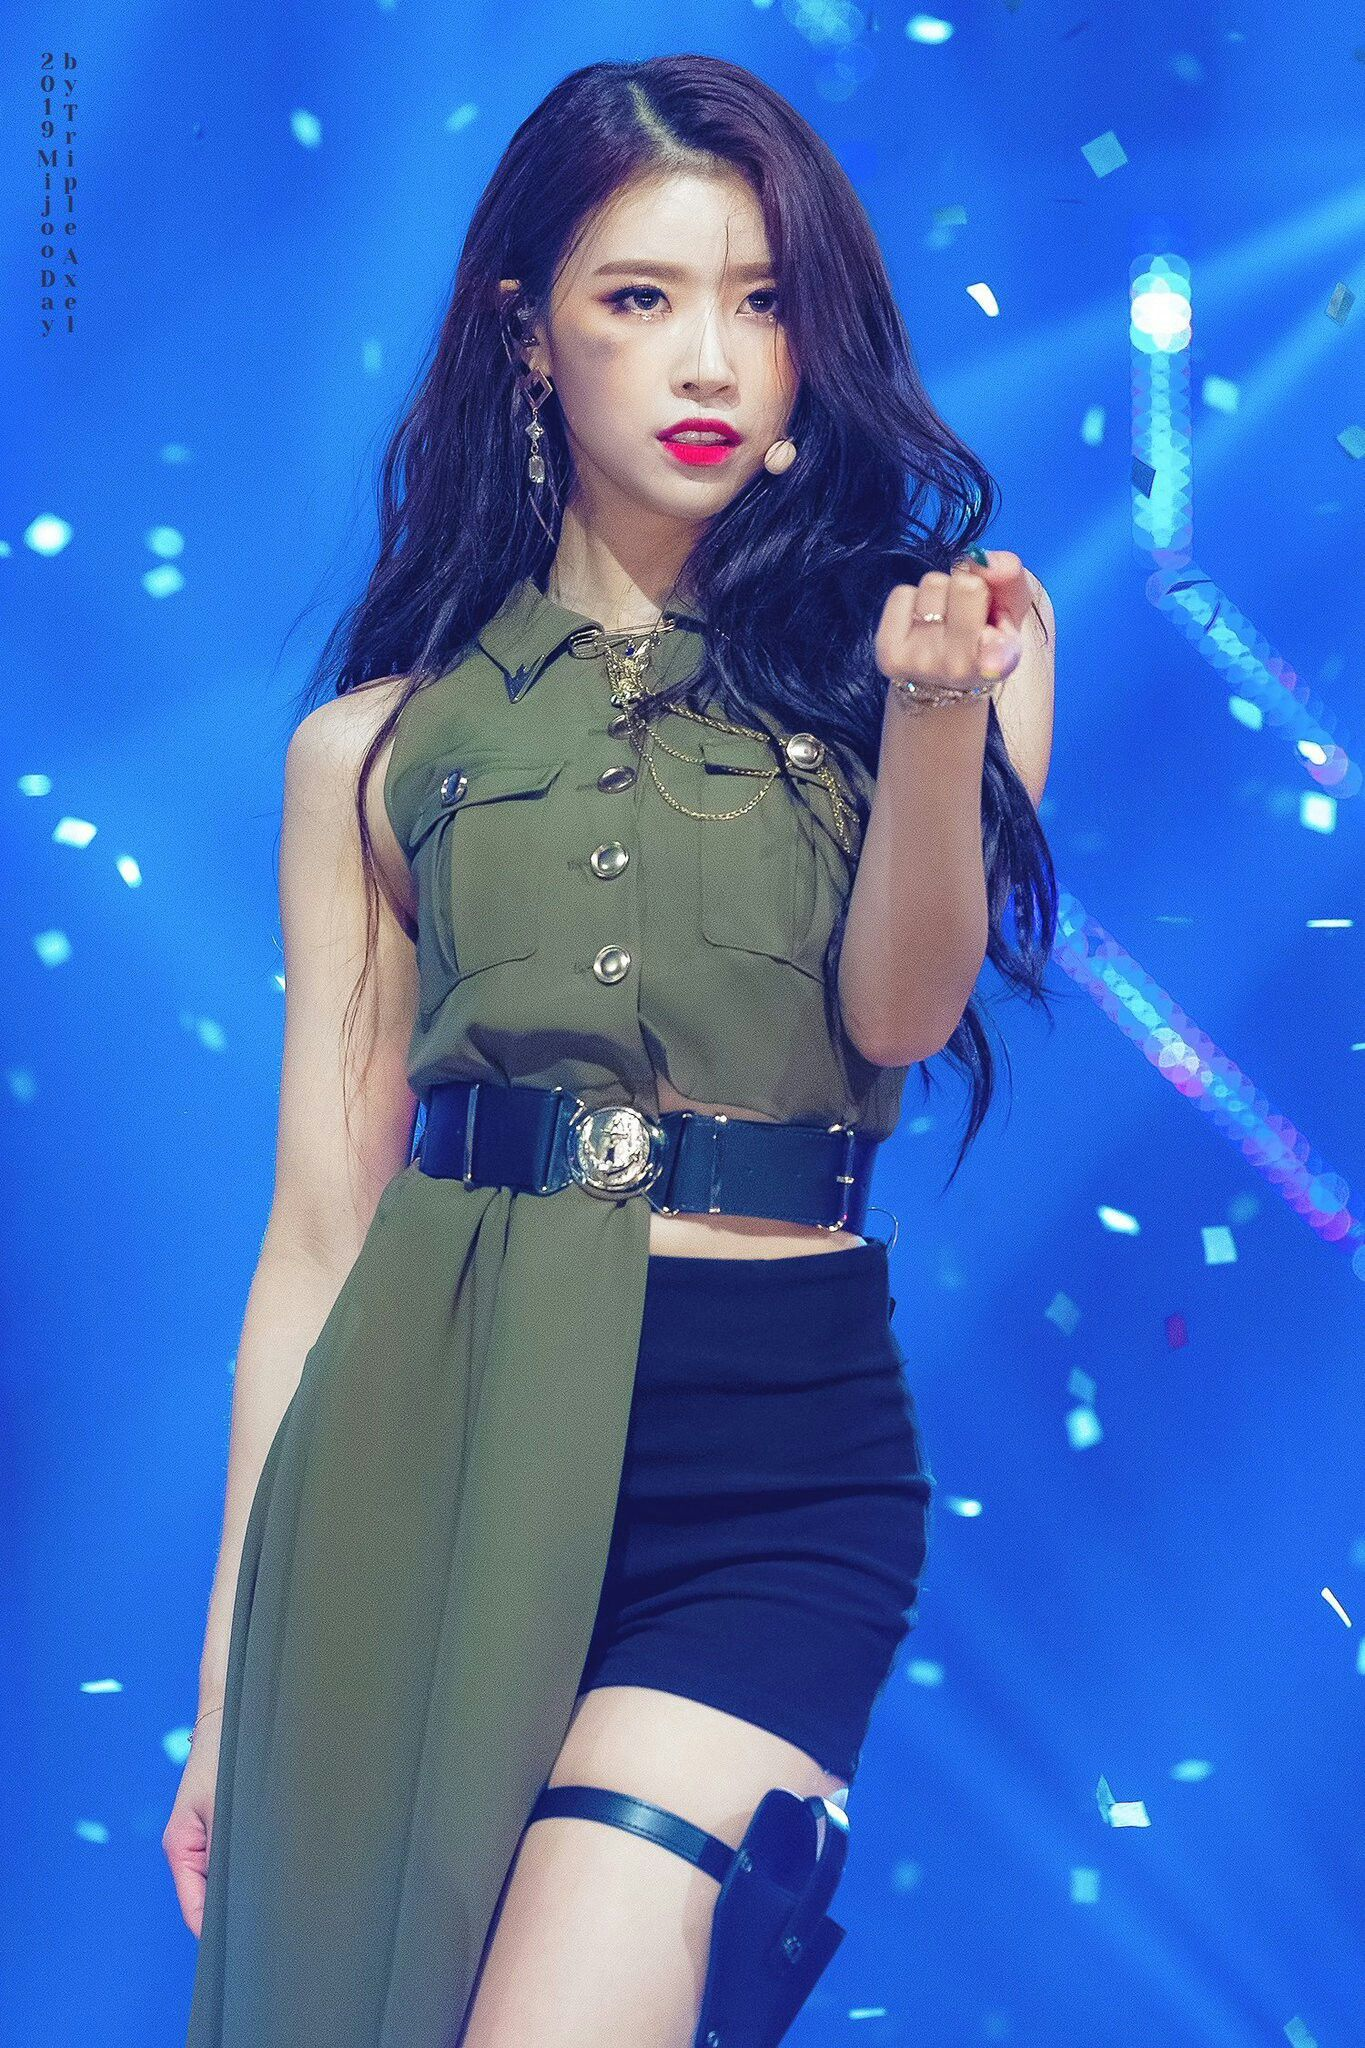 Pin By Majo Nam On Woollim Girls Dance Outfits Kpop Fashion Outfits Kpop Outfits